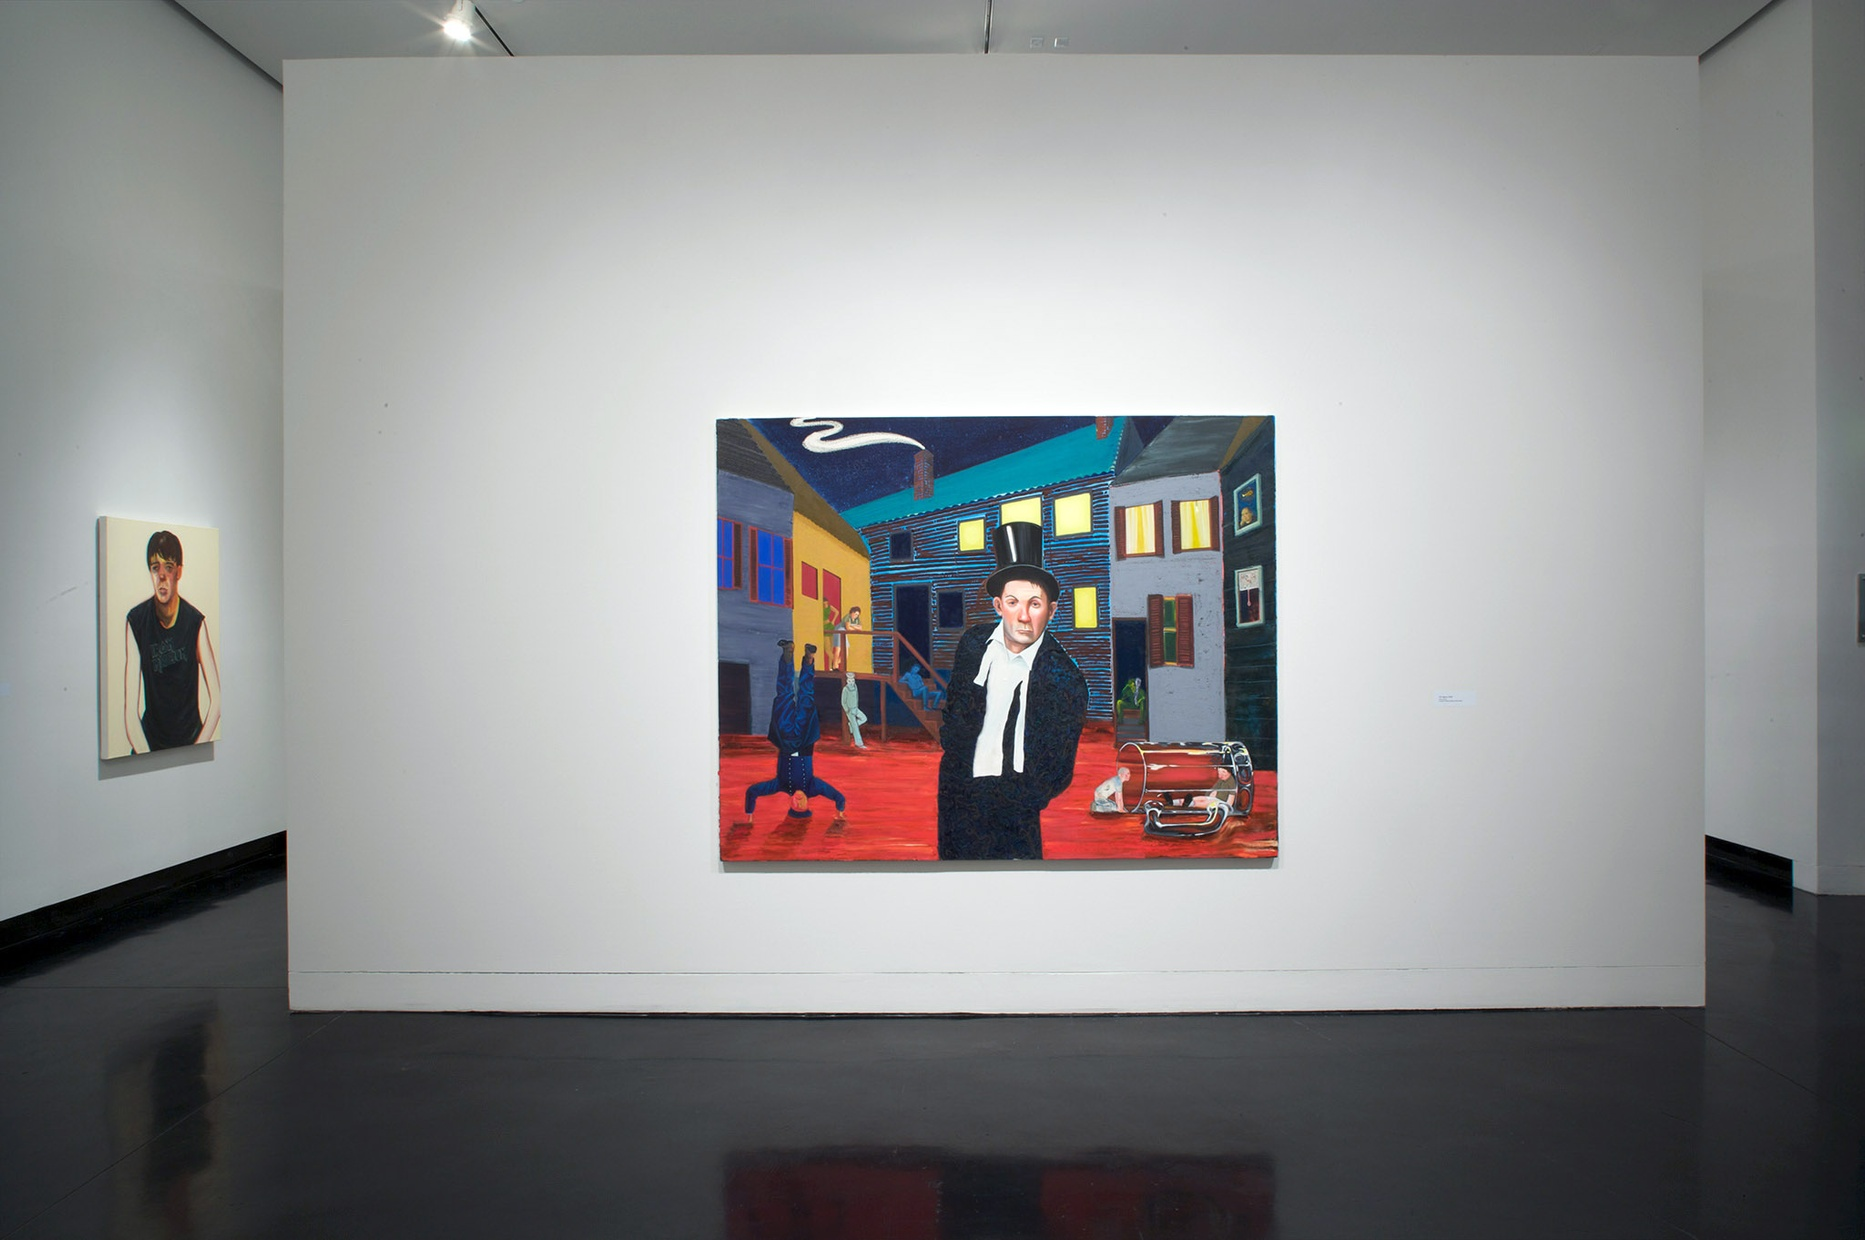 A large, colorful painting of an abstract city scene hangs on a white wall in the center of a gallery.